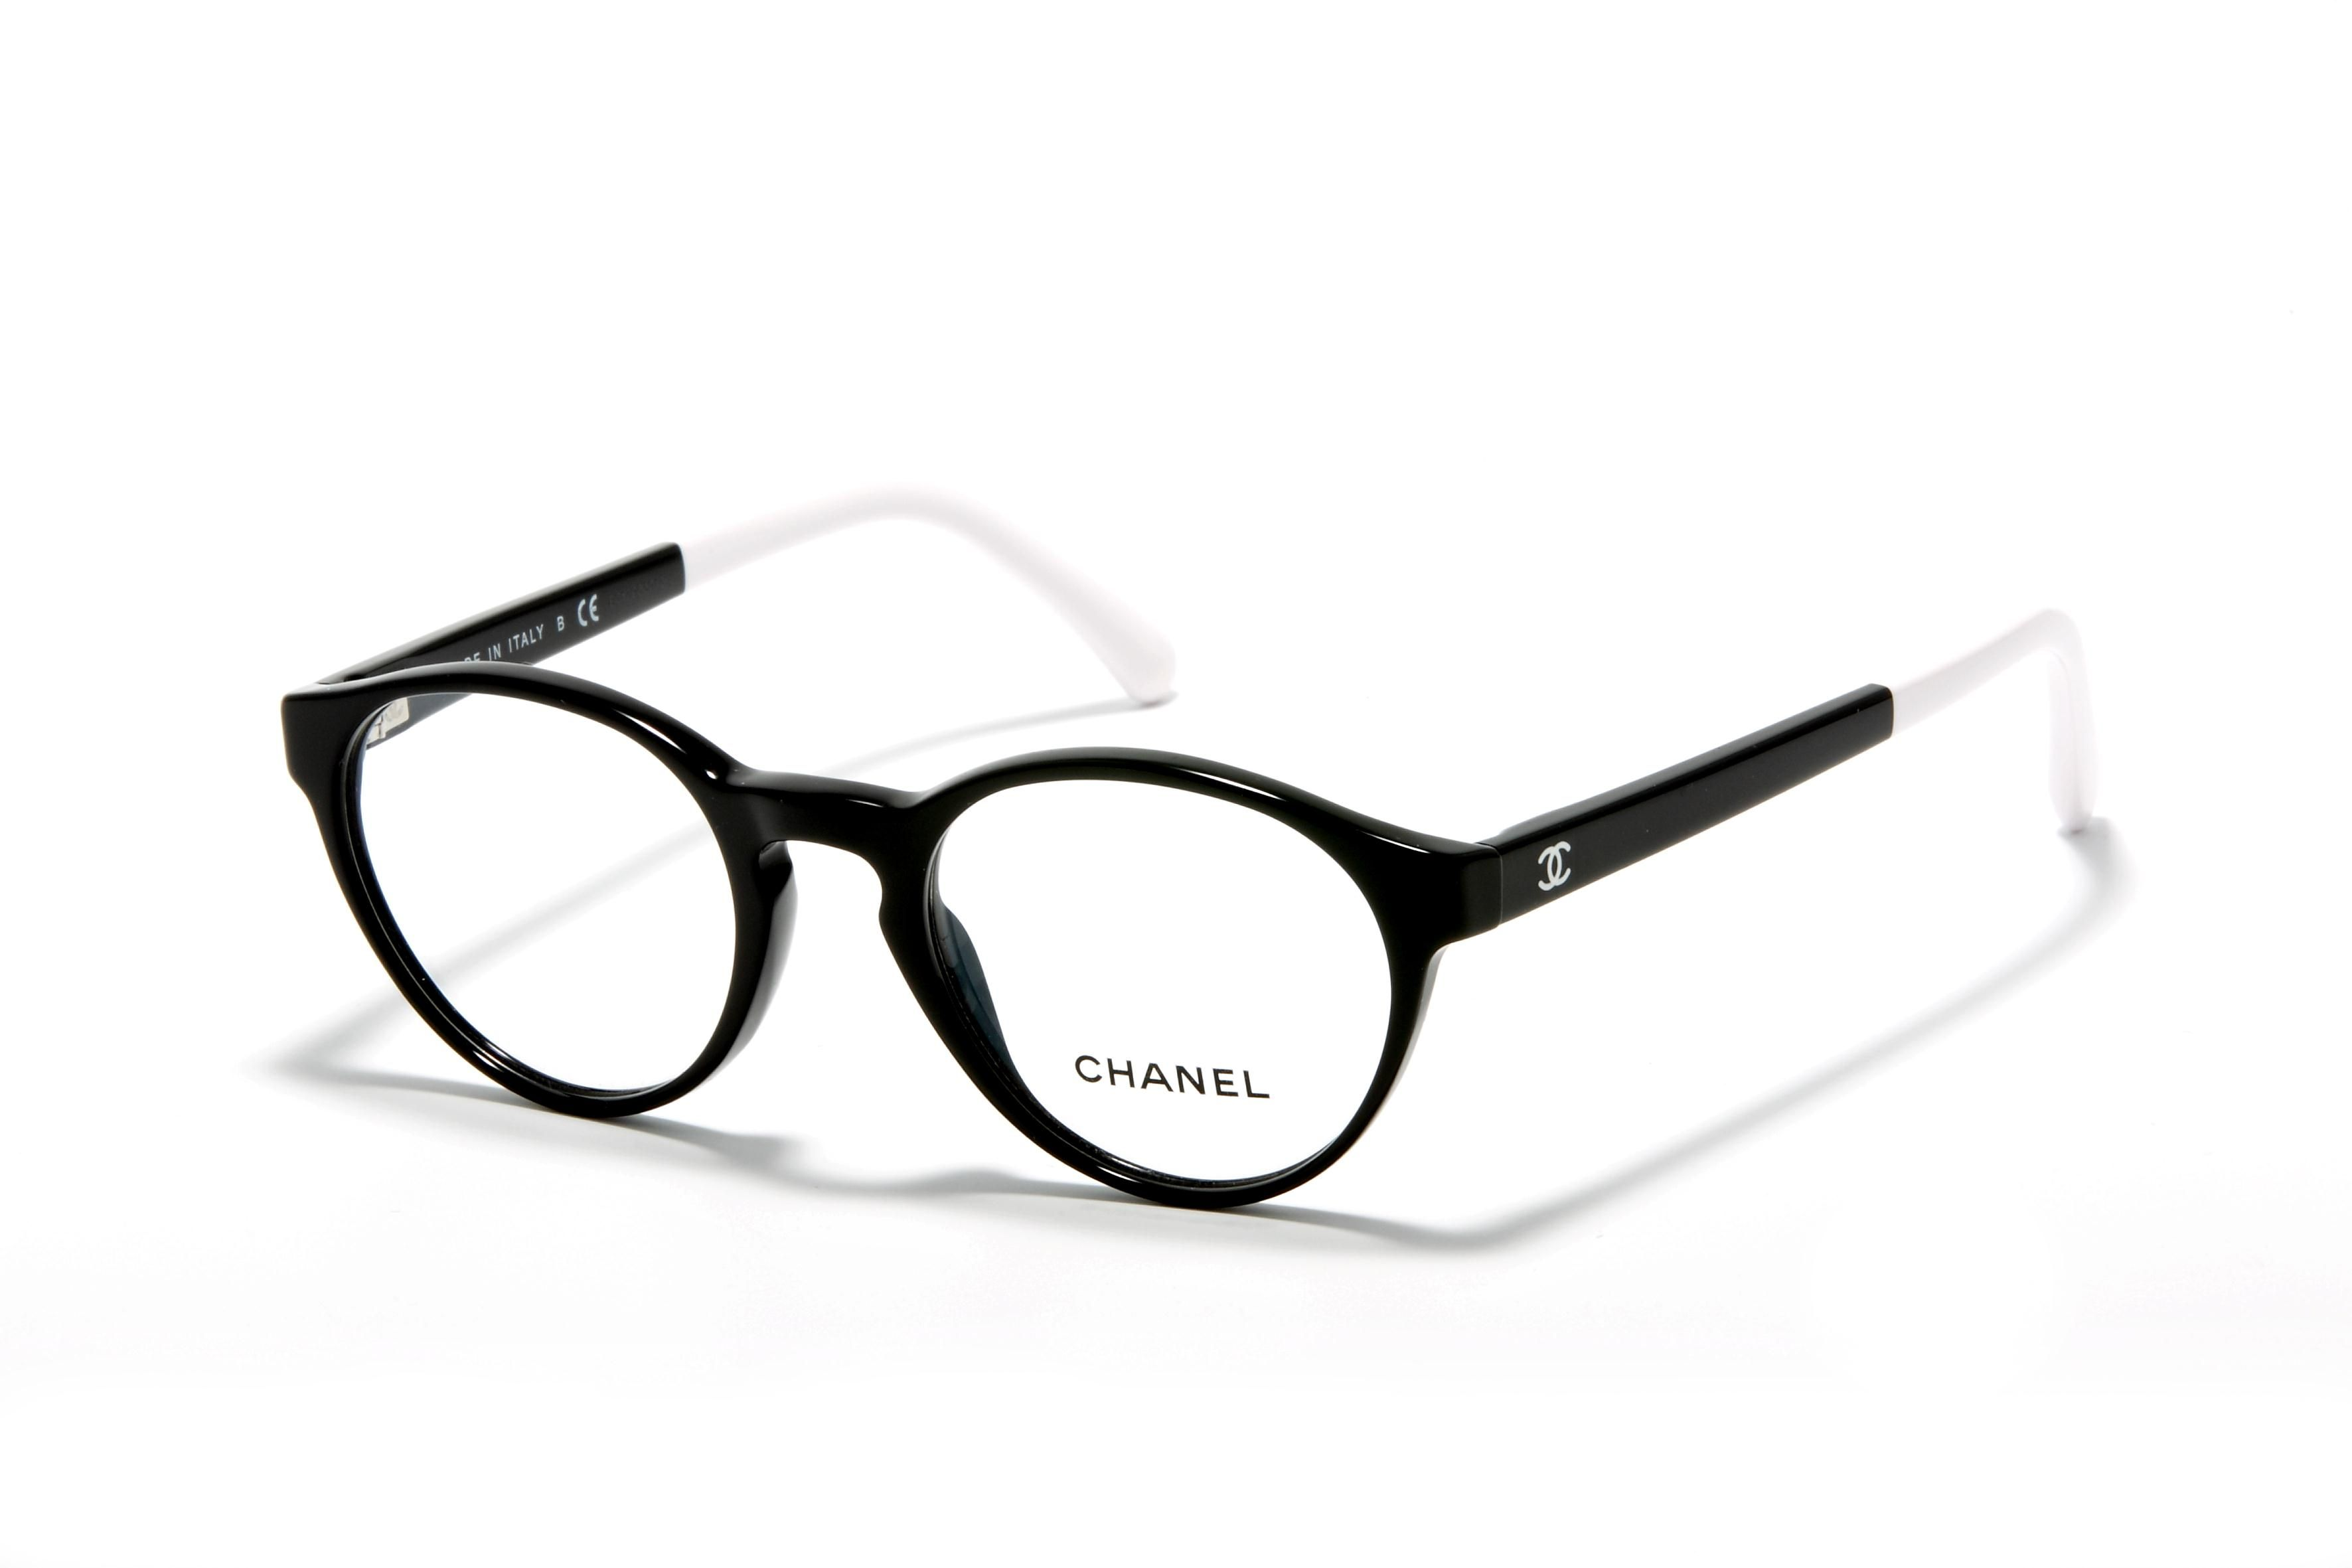 Lunettes Chanel 3231 - C501   Accessorize   Outfits 0f8188264684